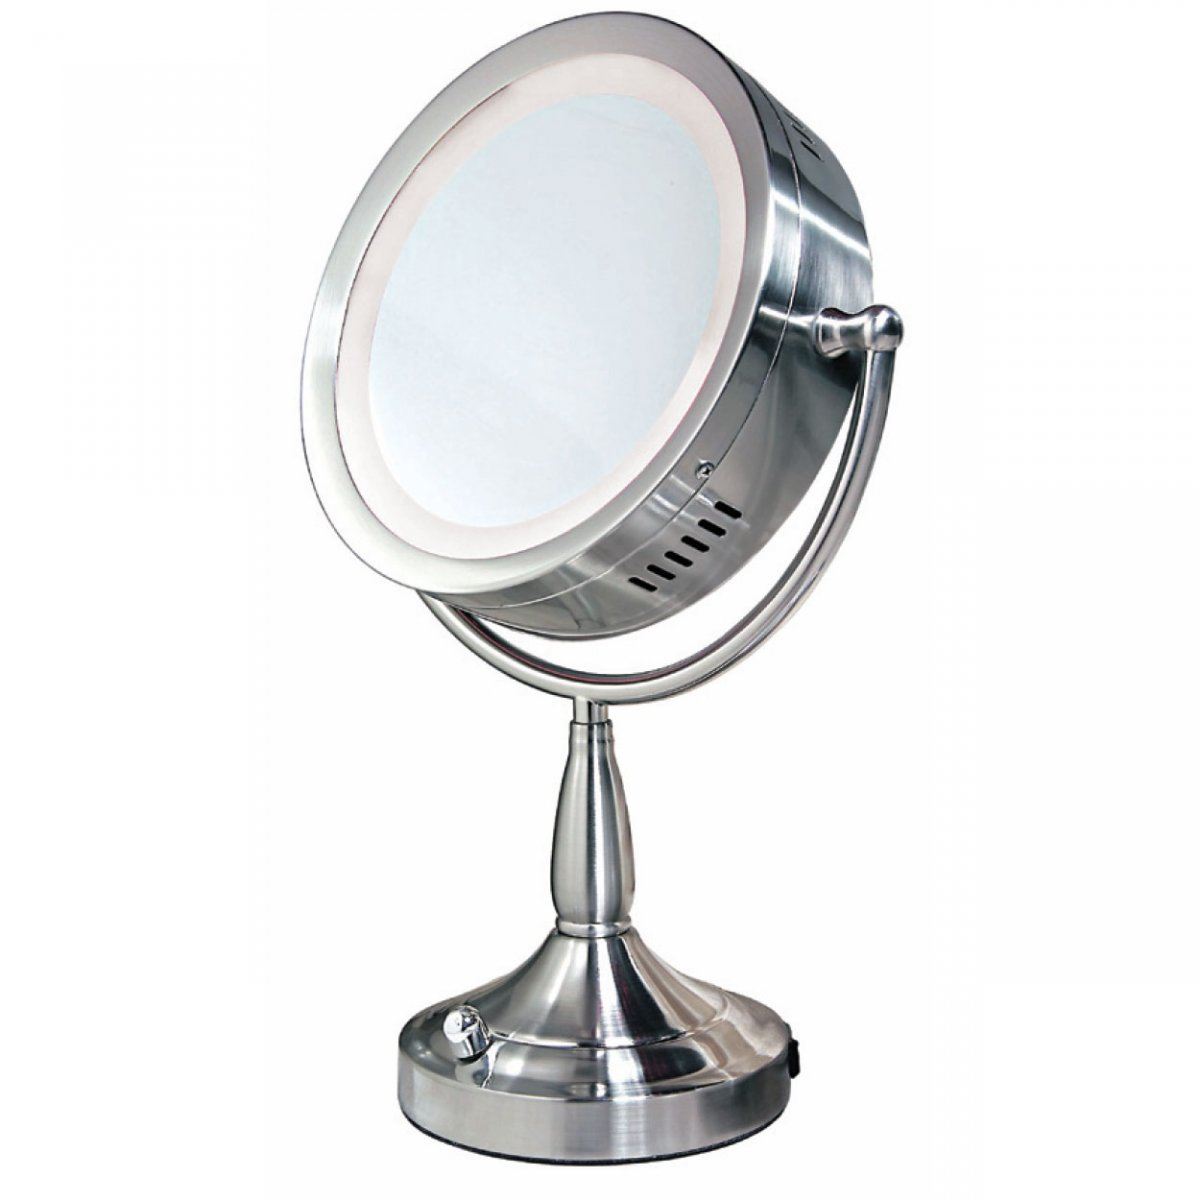 Best Vanity Lighting Makeup : Bedroom: Using Best Lighted Makeup Mirror For Pretty Home Accessories Ideas Stephaniegatschet.com